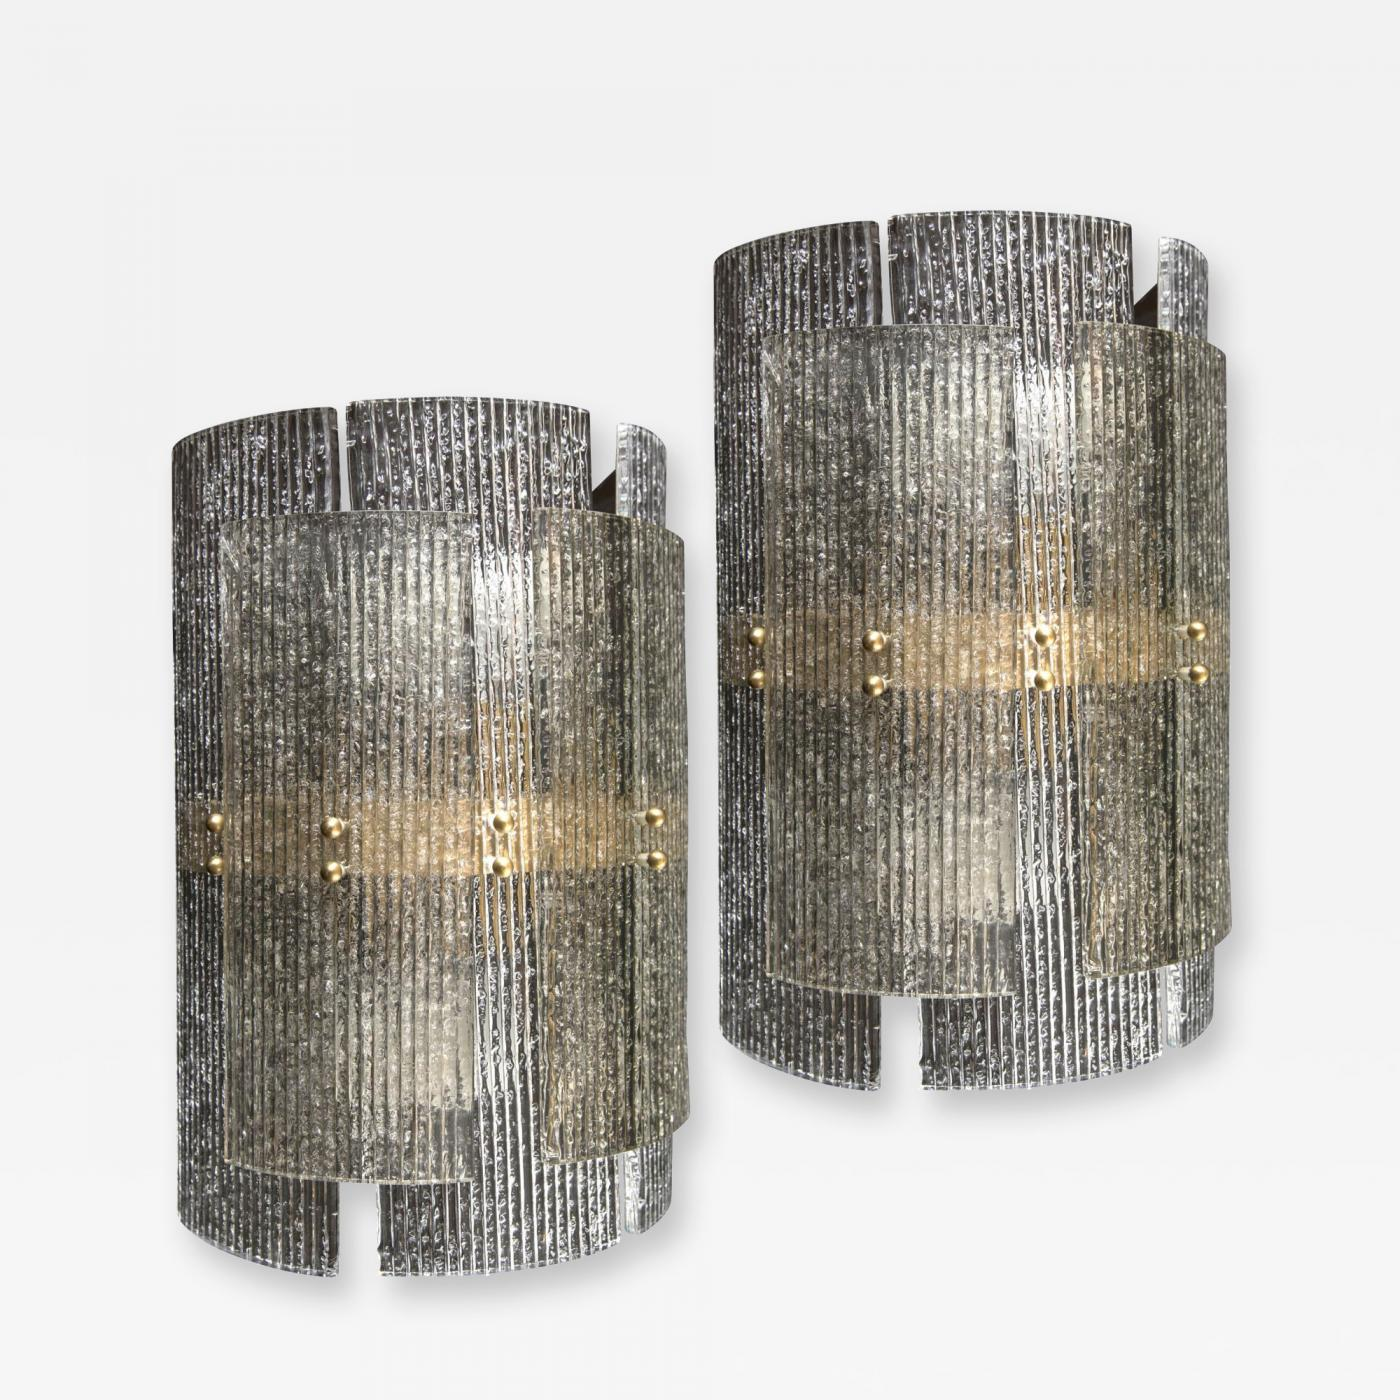 Pair of murano wall lights listings furniture lighting wall lights and sconces mozeypictures Images